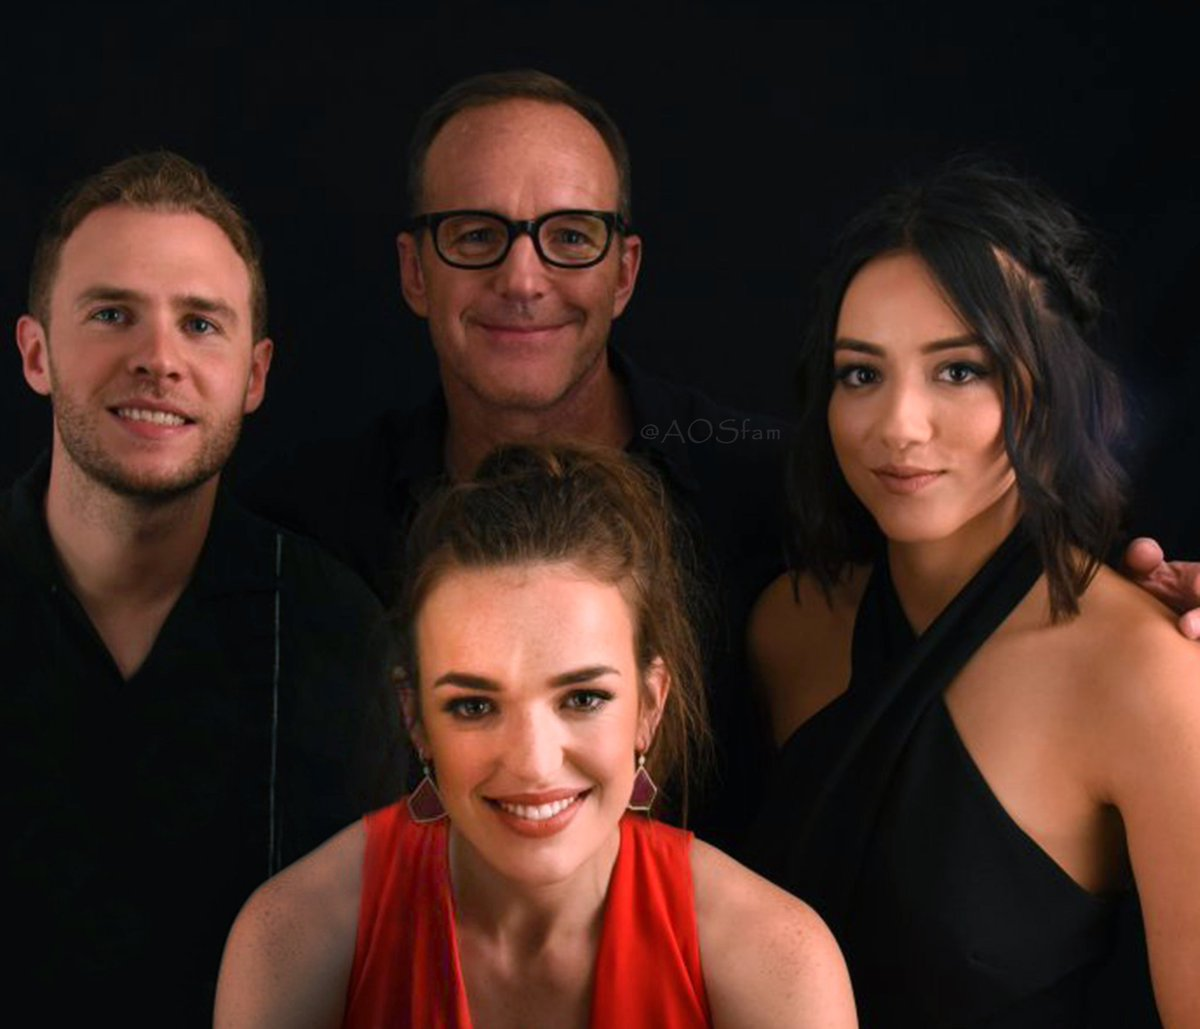 Here's to Leopold, Jemma & Daisy's Dad-- PHILLIP J. COULSON, Happy Father's Day!!!  You don't need to be biologically related to them to be a father, you're just a natural! We love you! 😊  @clarkgregg  @lil_henstridge @chloebennet  #Philinda Fam Bam #FitzSkimmons #Philindaisy